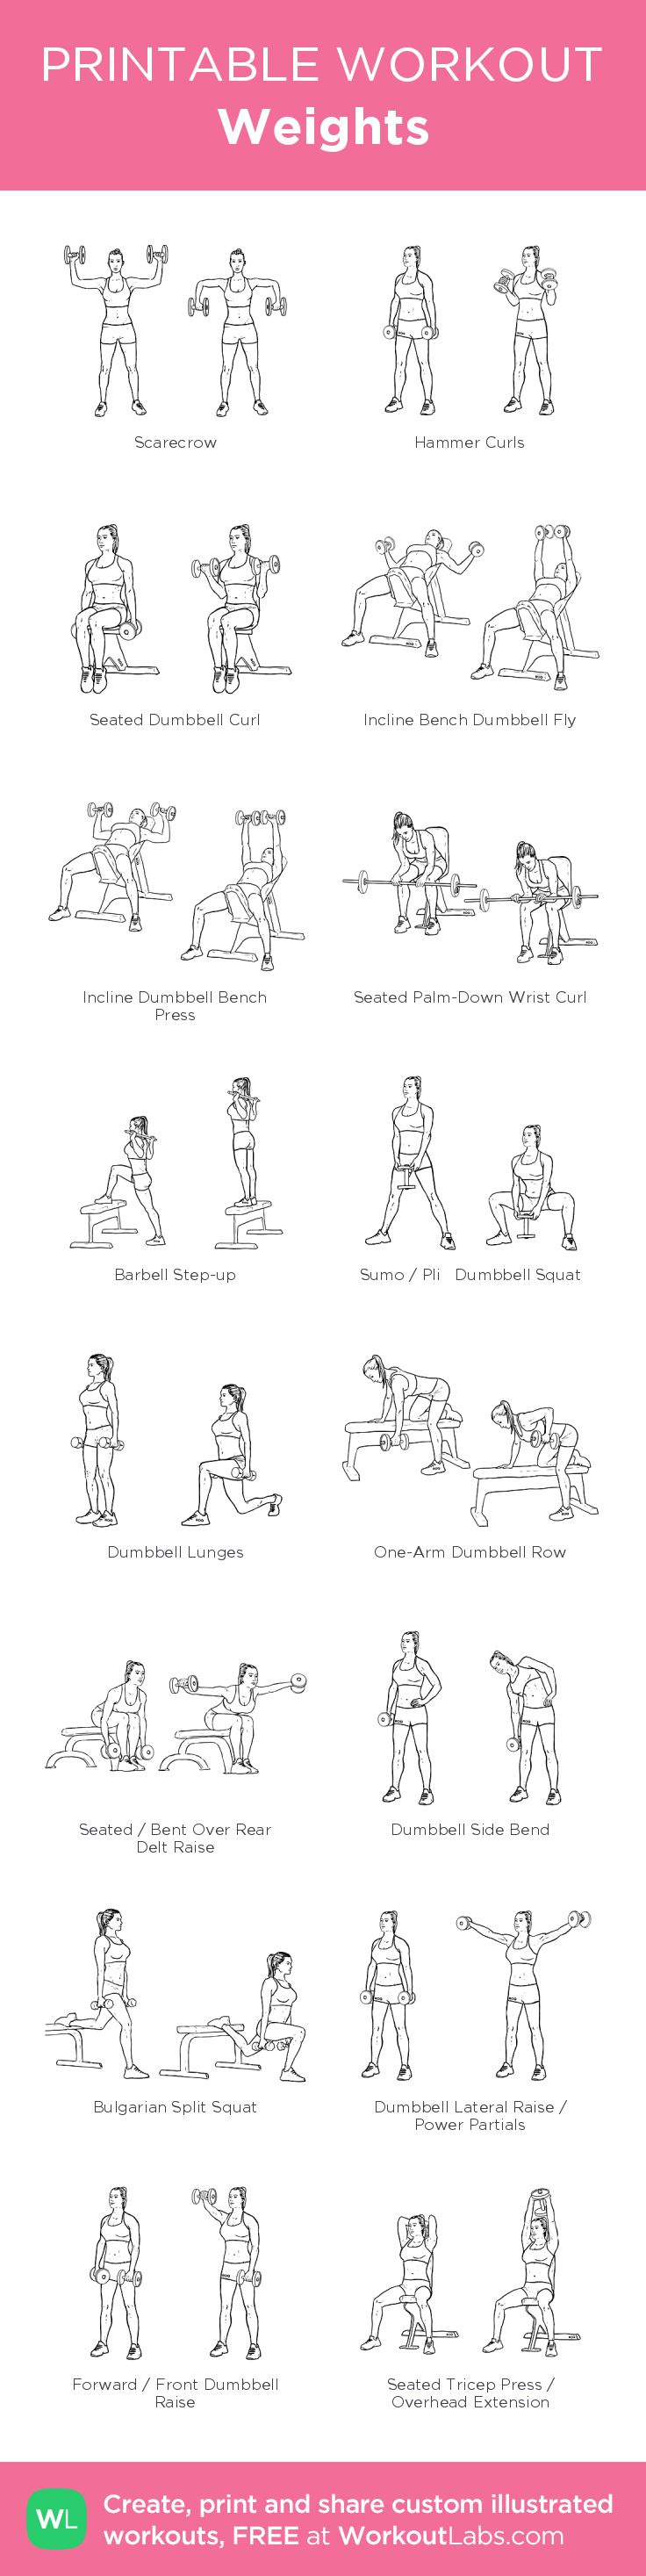 Weights: my visual workout created at WorkoutLabs.com • Click through to customize and download as a FREE PDF! #customworkout